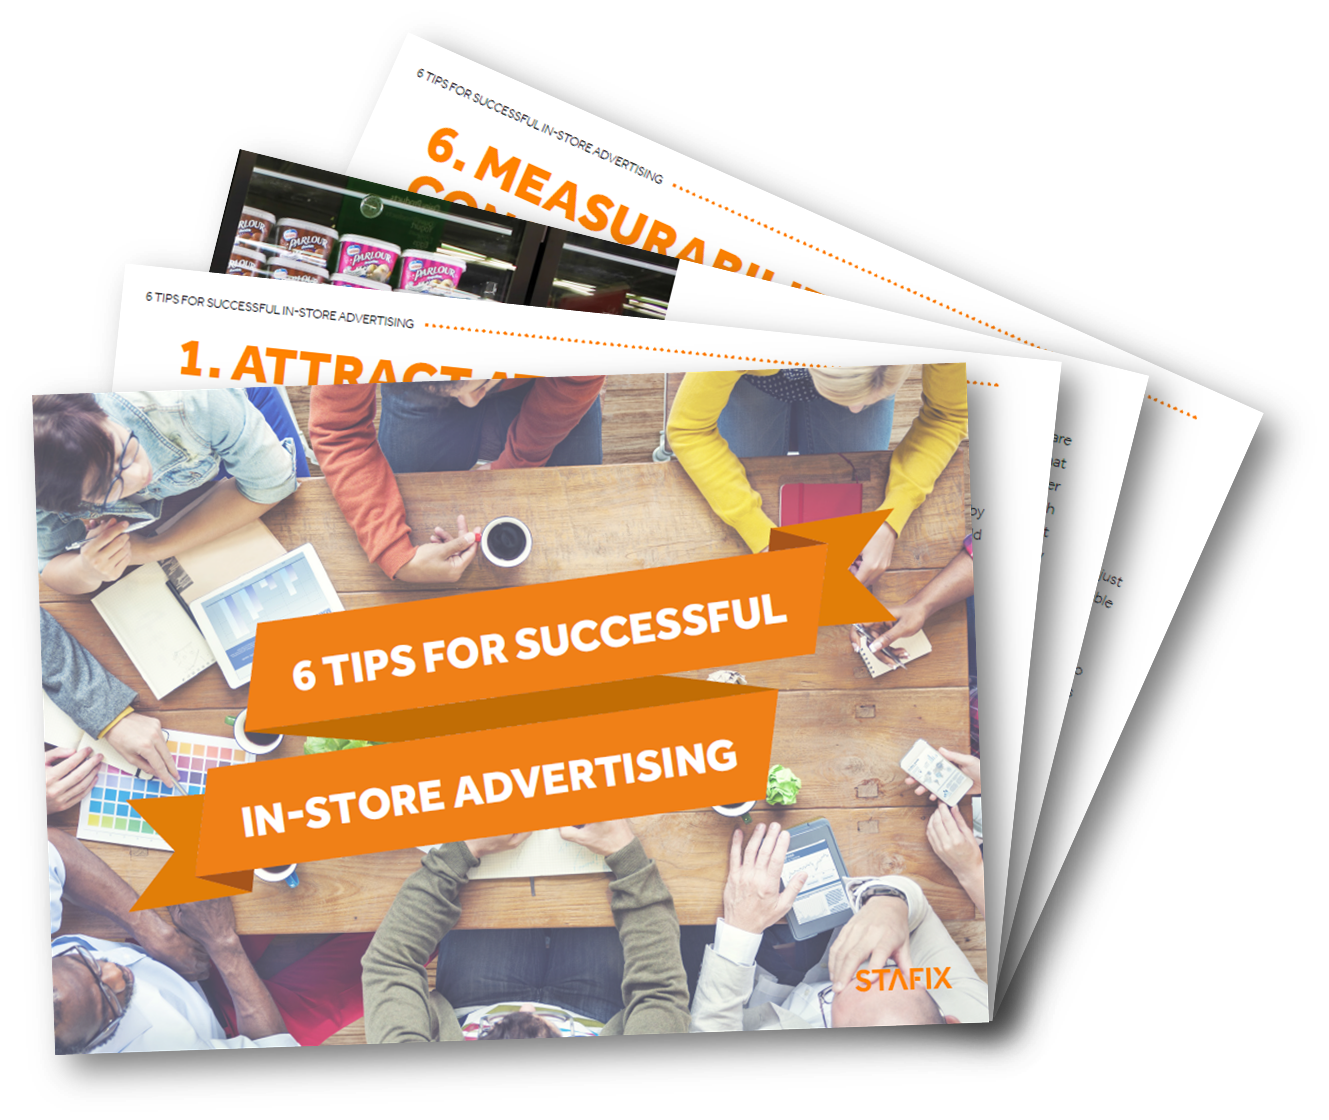 6 tips for successful in-store advertising